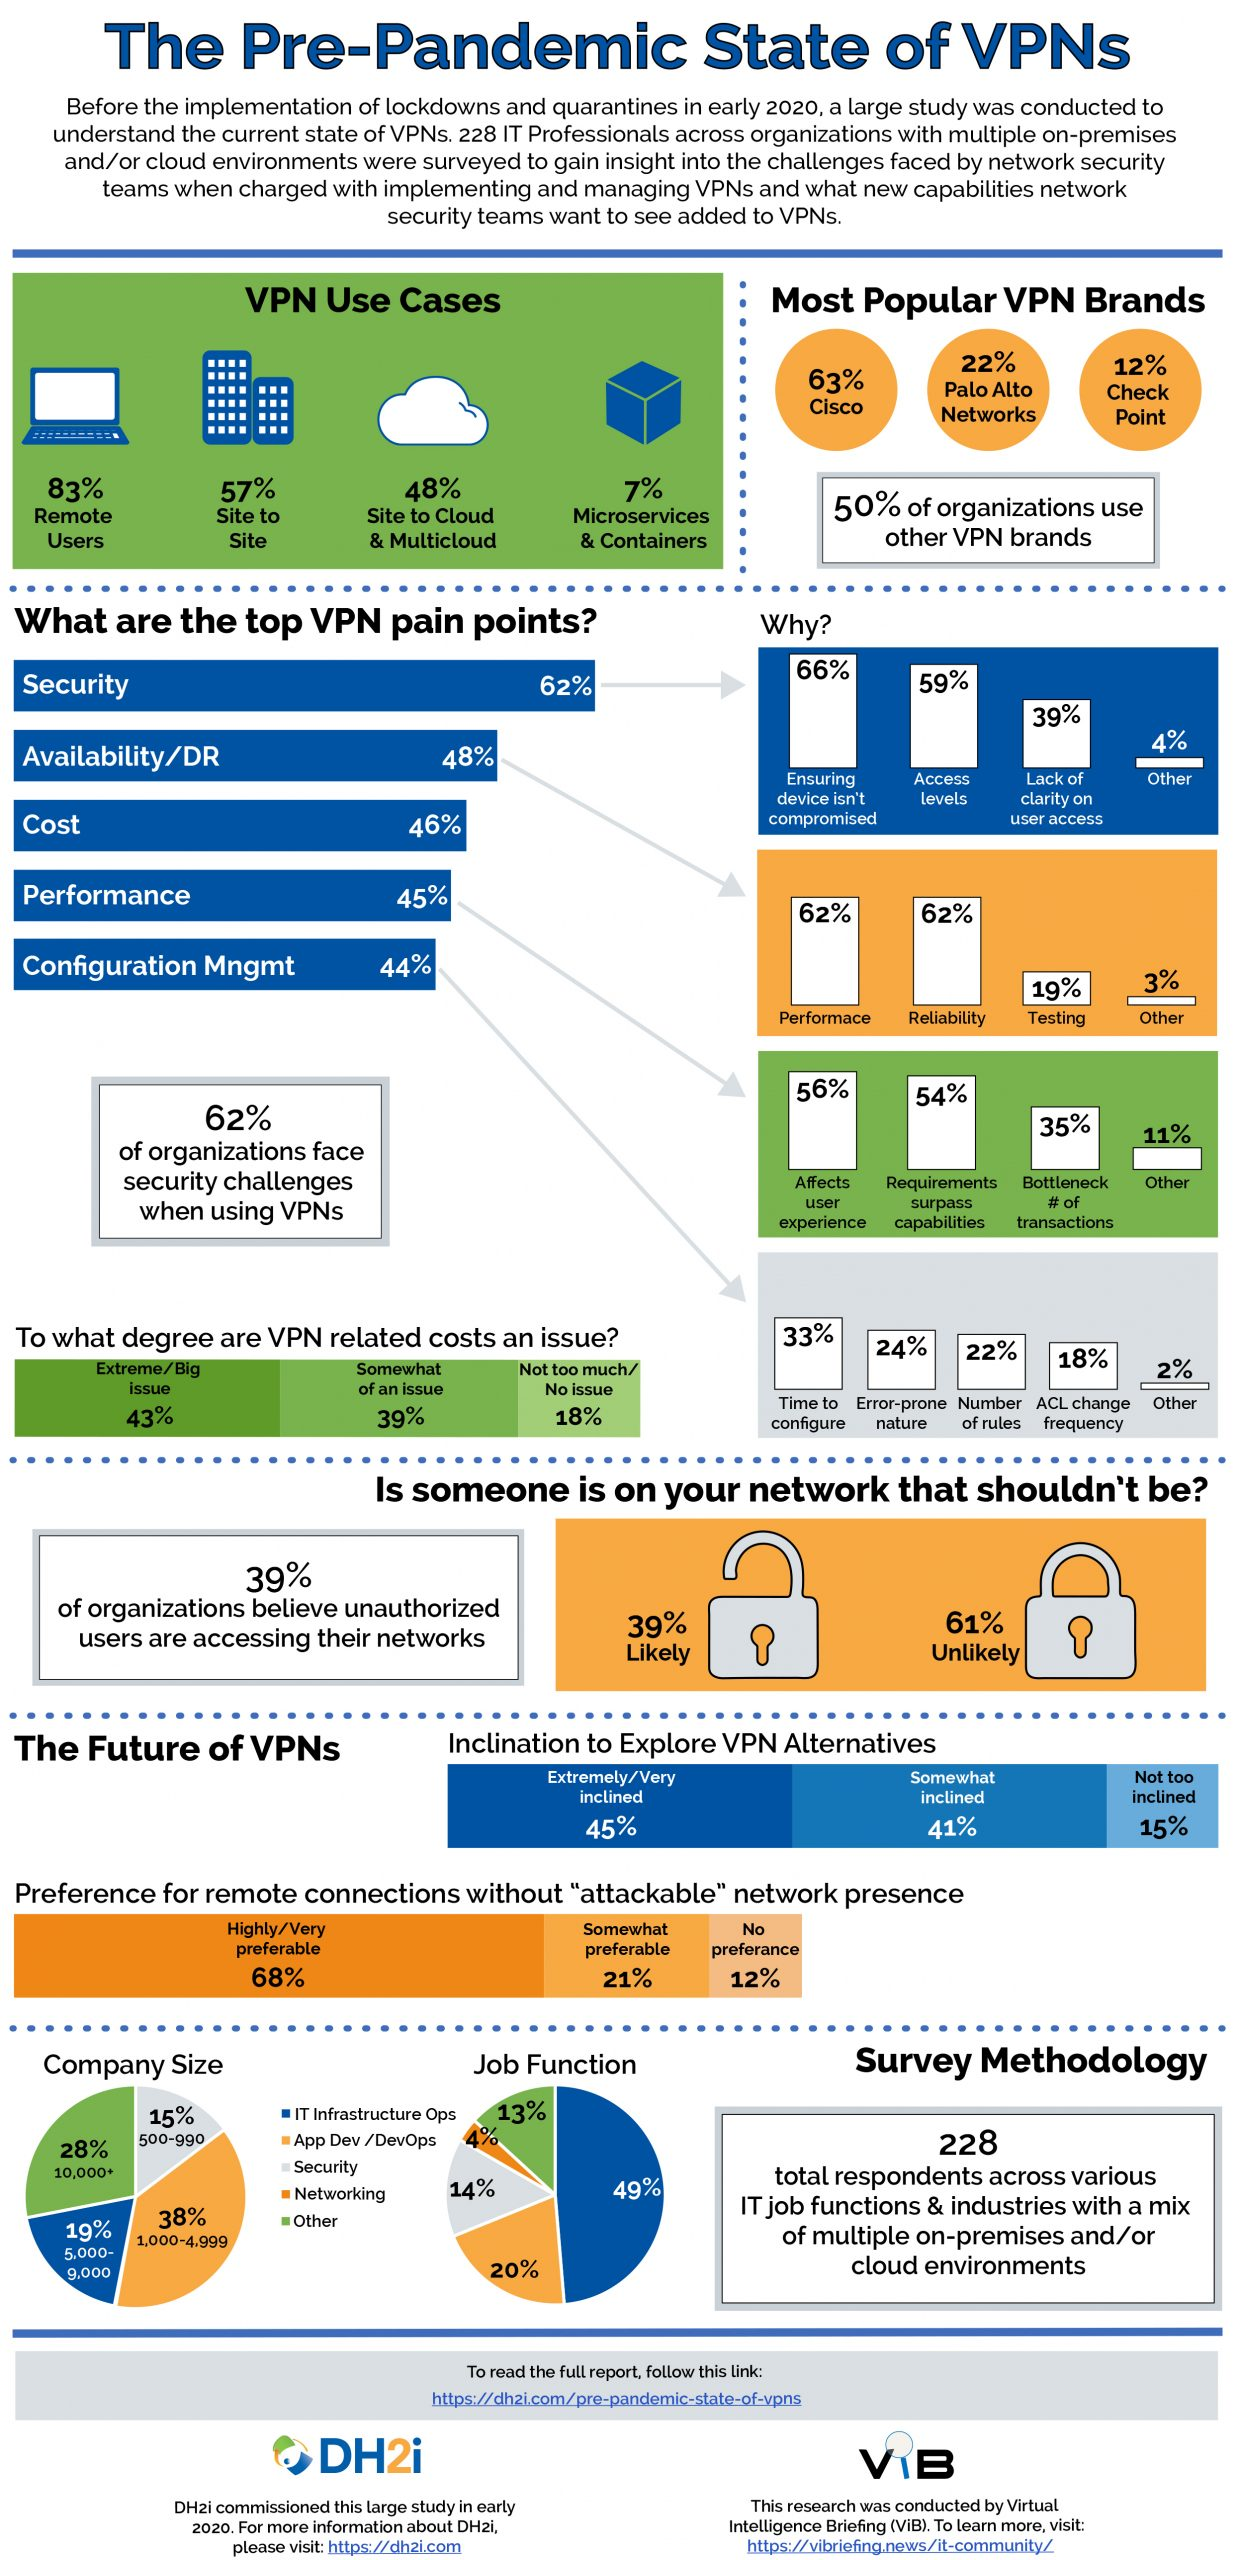 dh2i the pre-pandemic state of vpns infographic